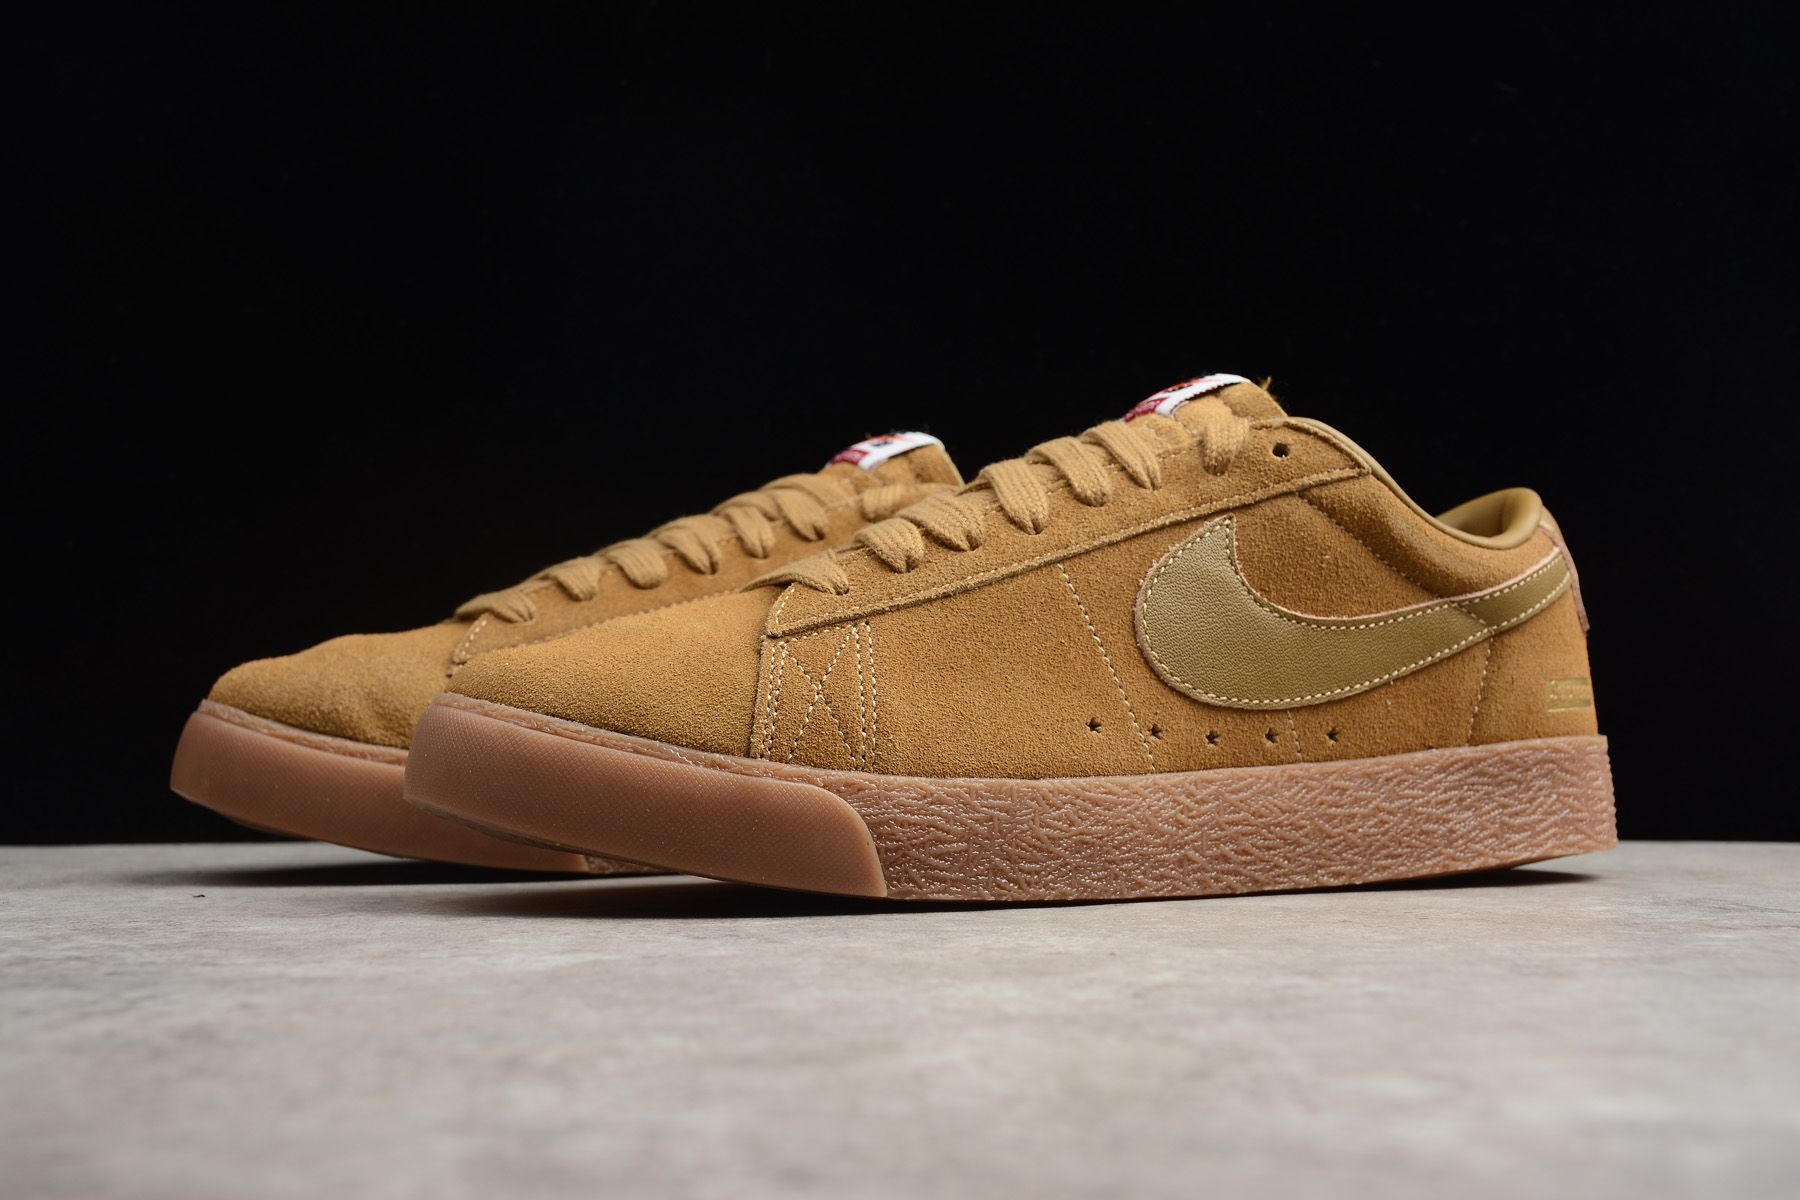 100% authentic 74fb7 6833e Supreme x Nike SB Blazer Low GT QS Golden BeigeGum 716890-229 For